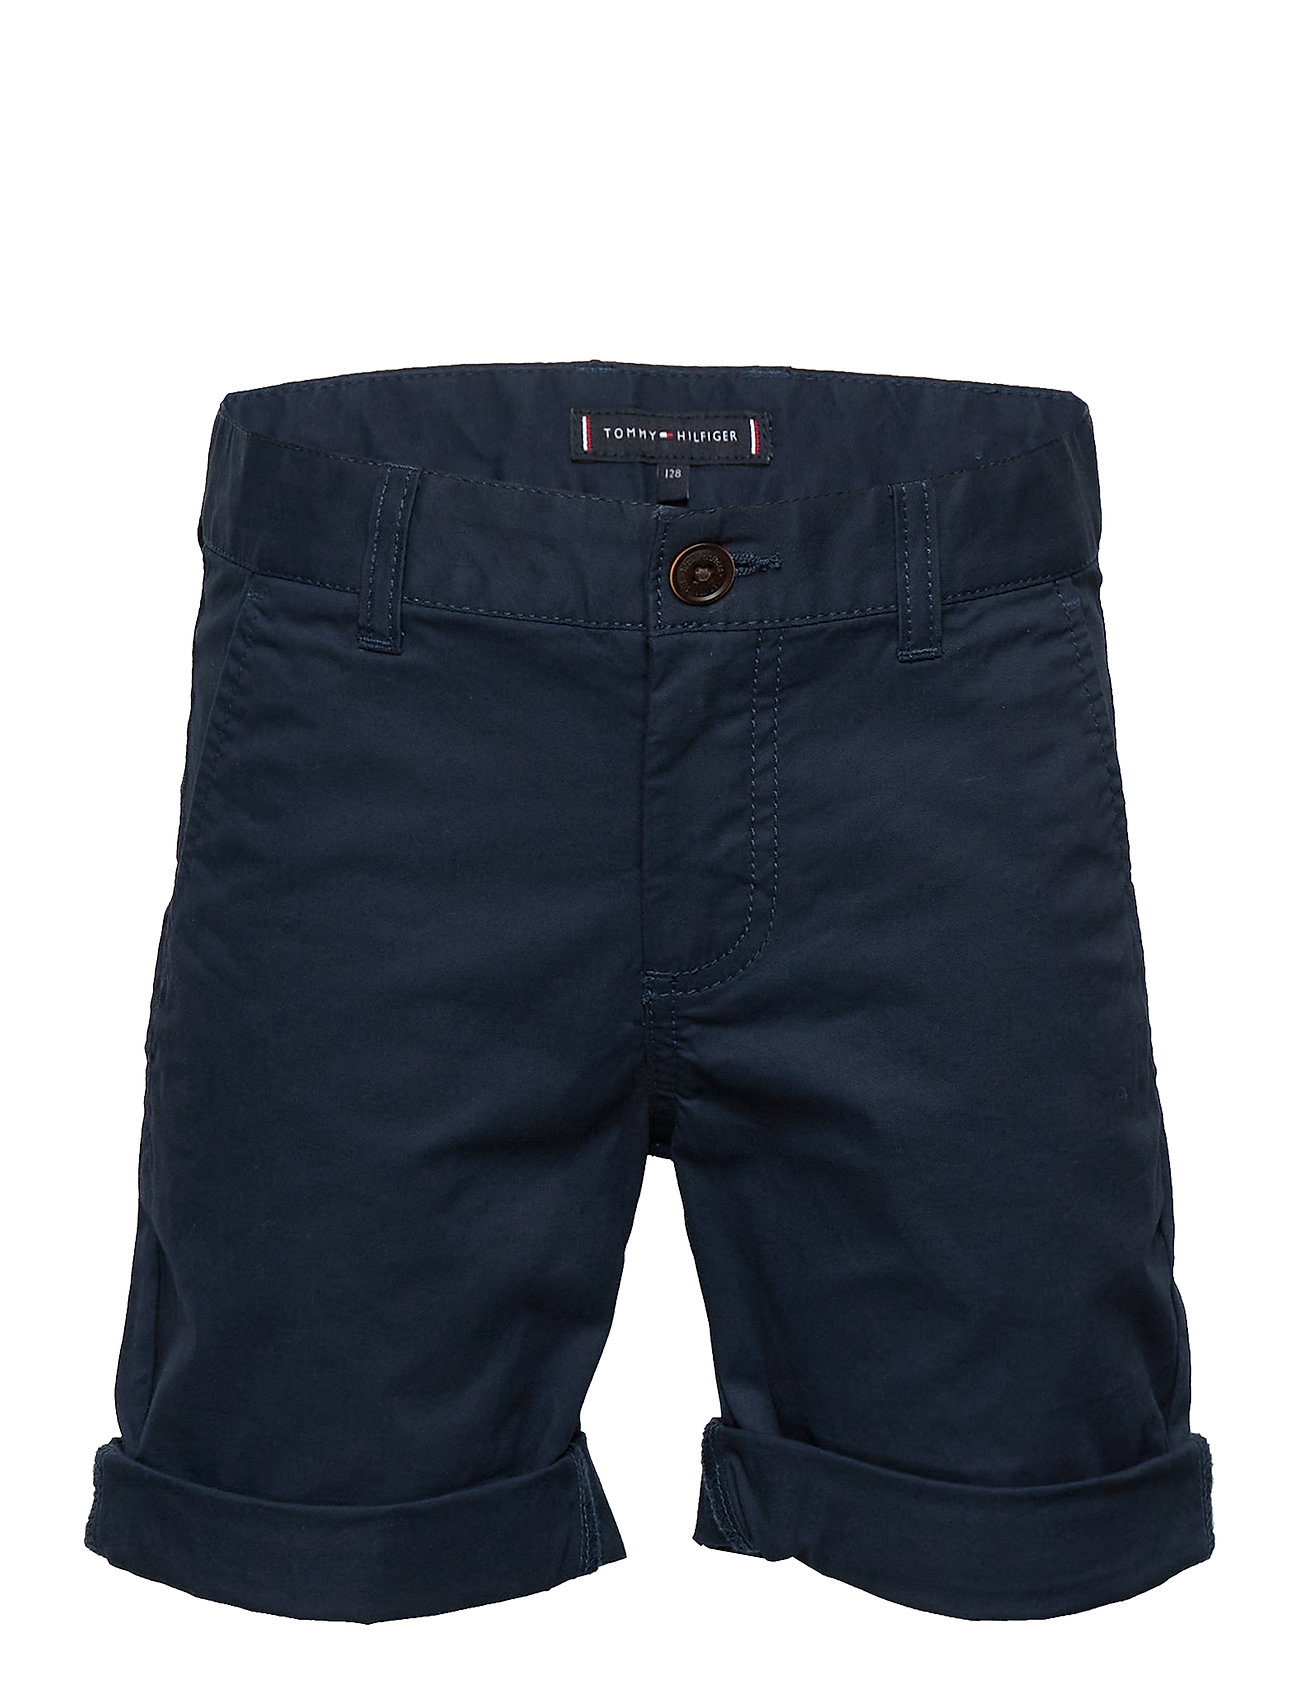 Tommy Hilfiger ESSENTIAL CHINO SHORT - TWILIGHT NAVY 654-860